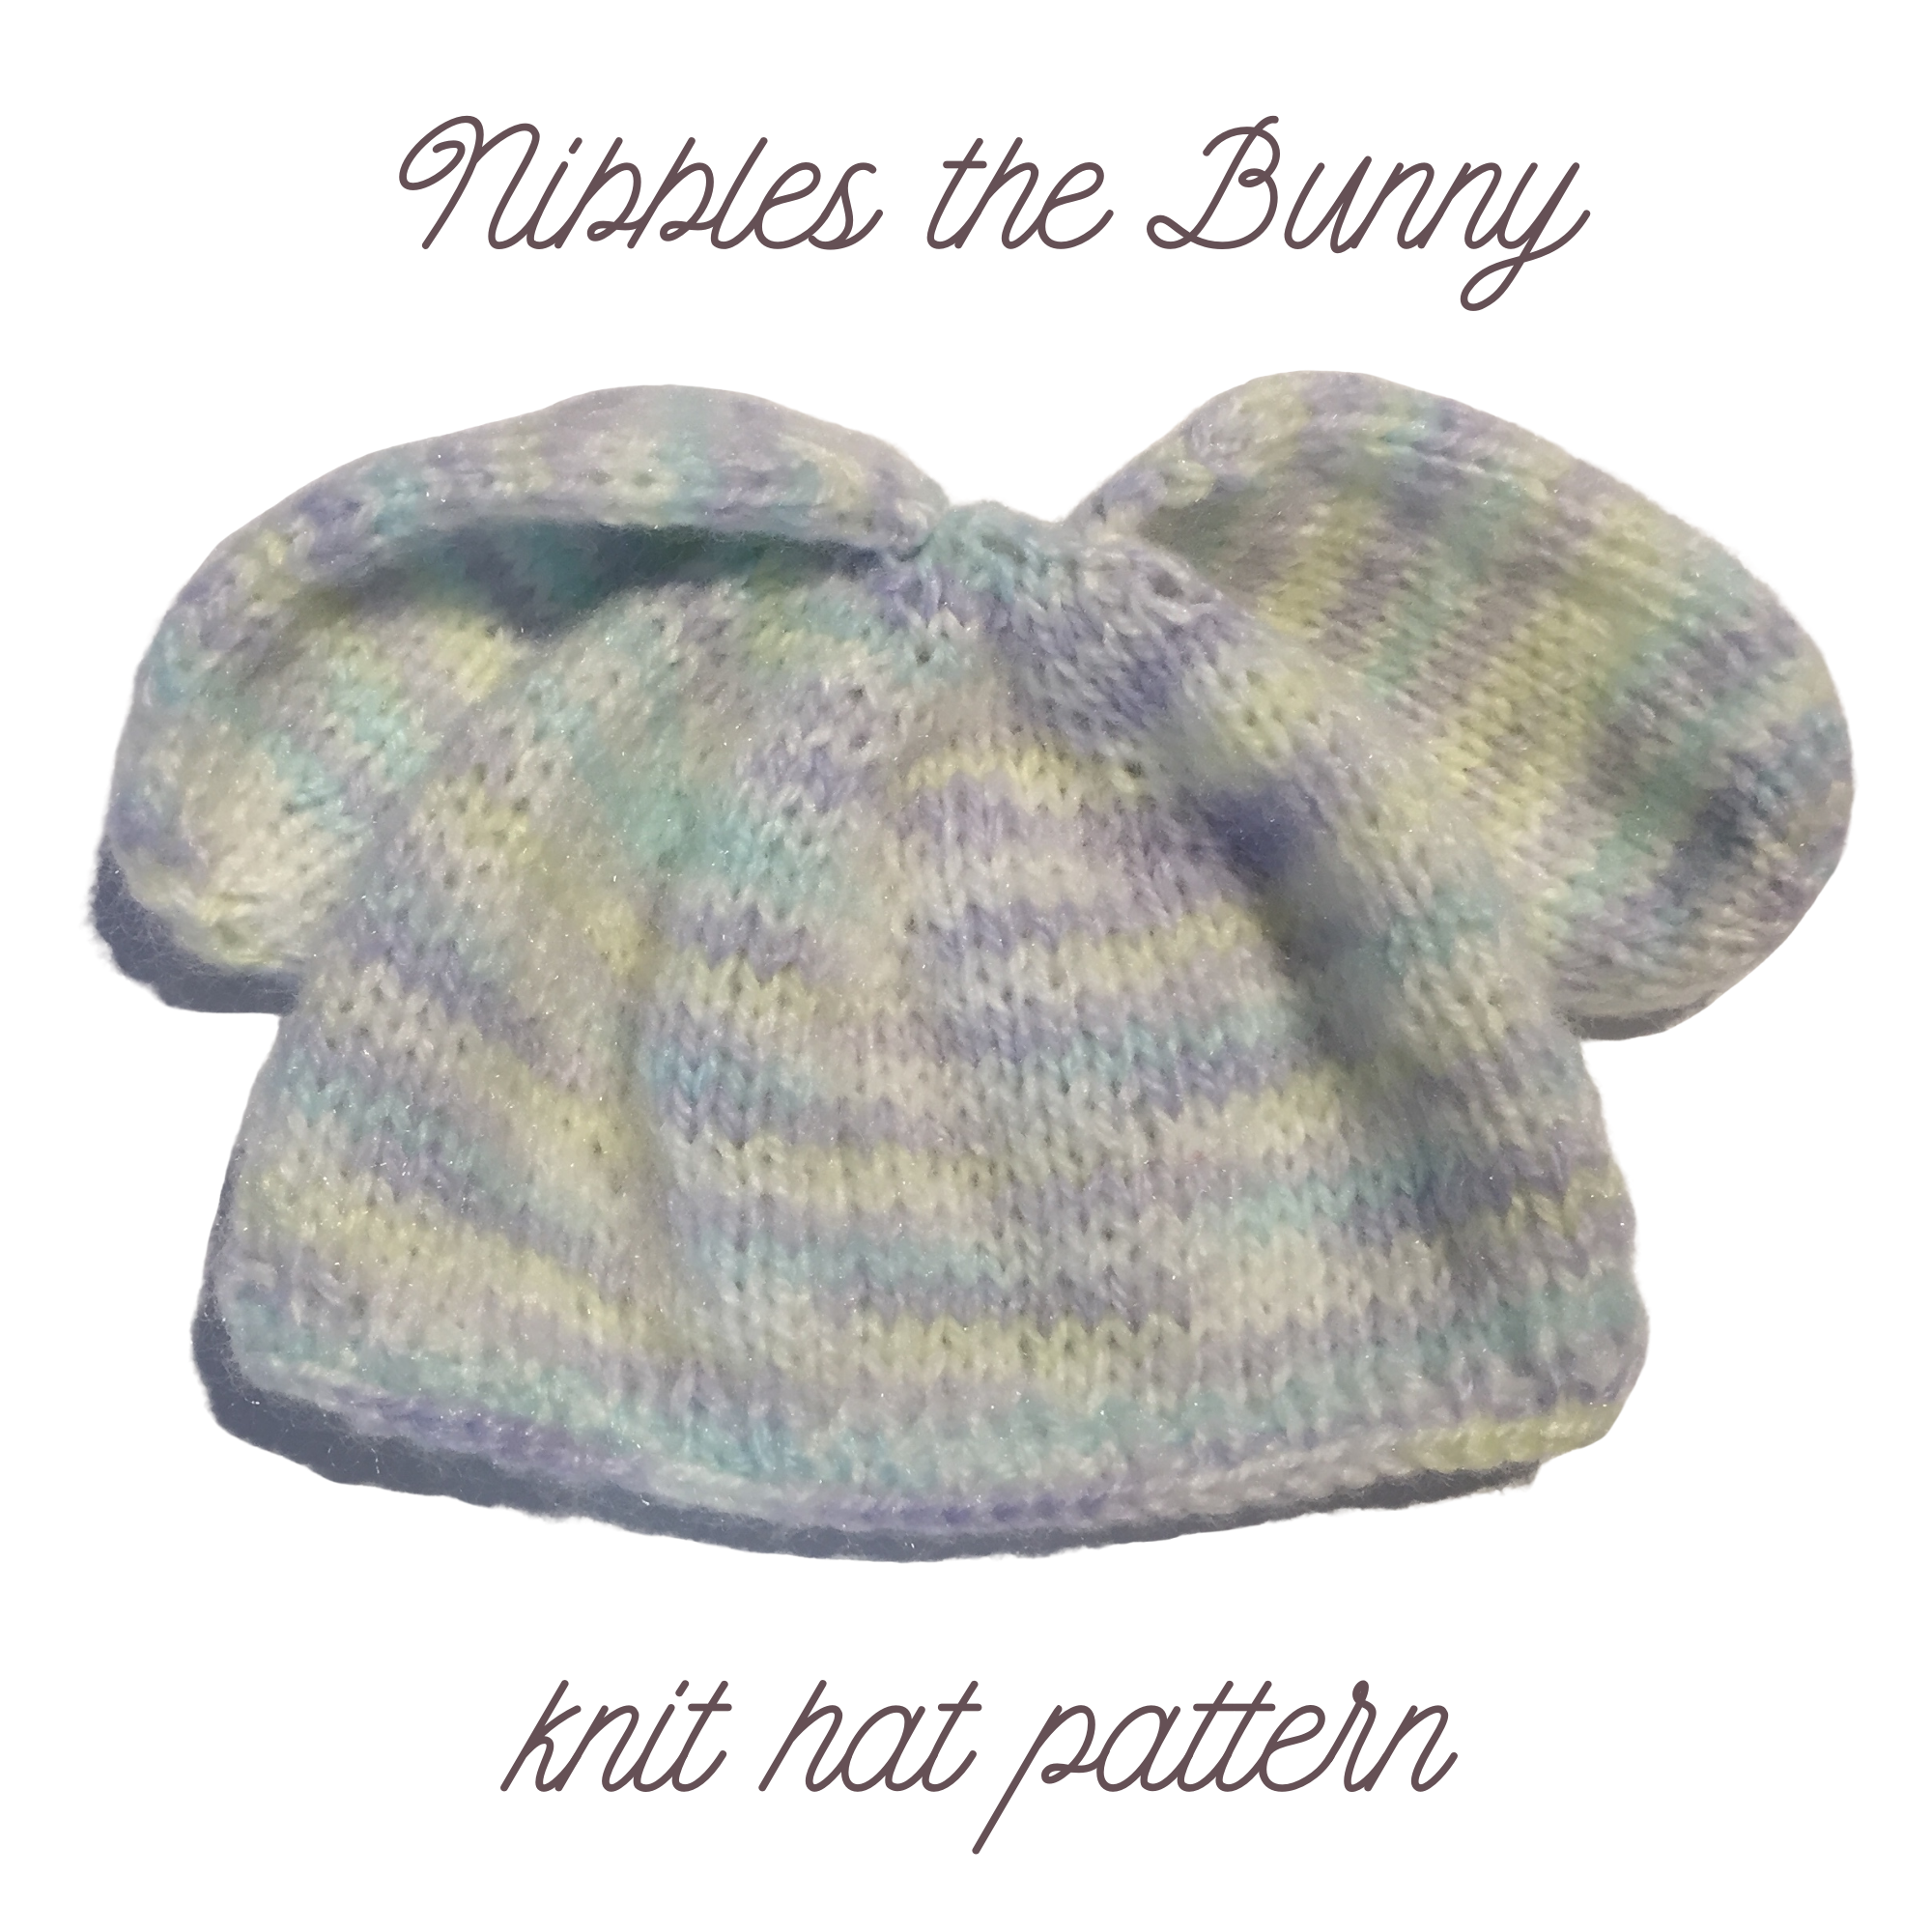 nibbles knit hat pattern – product photo – 2000×2000